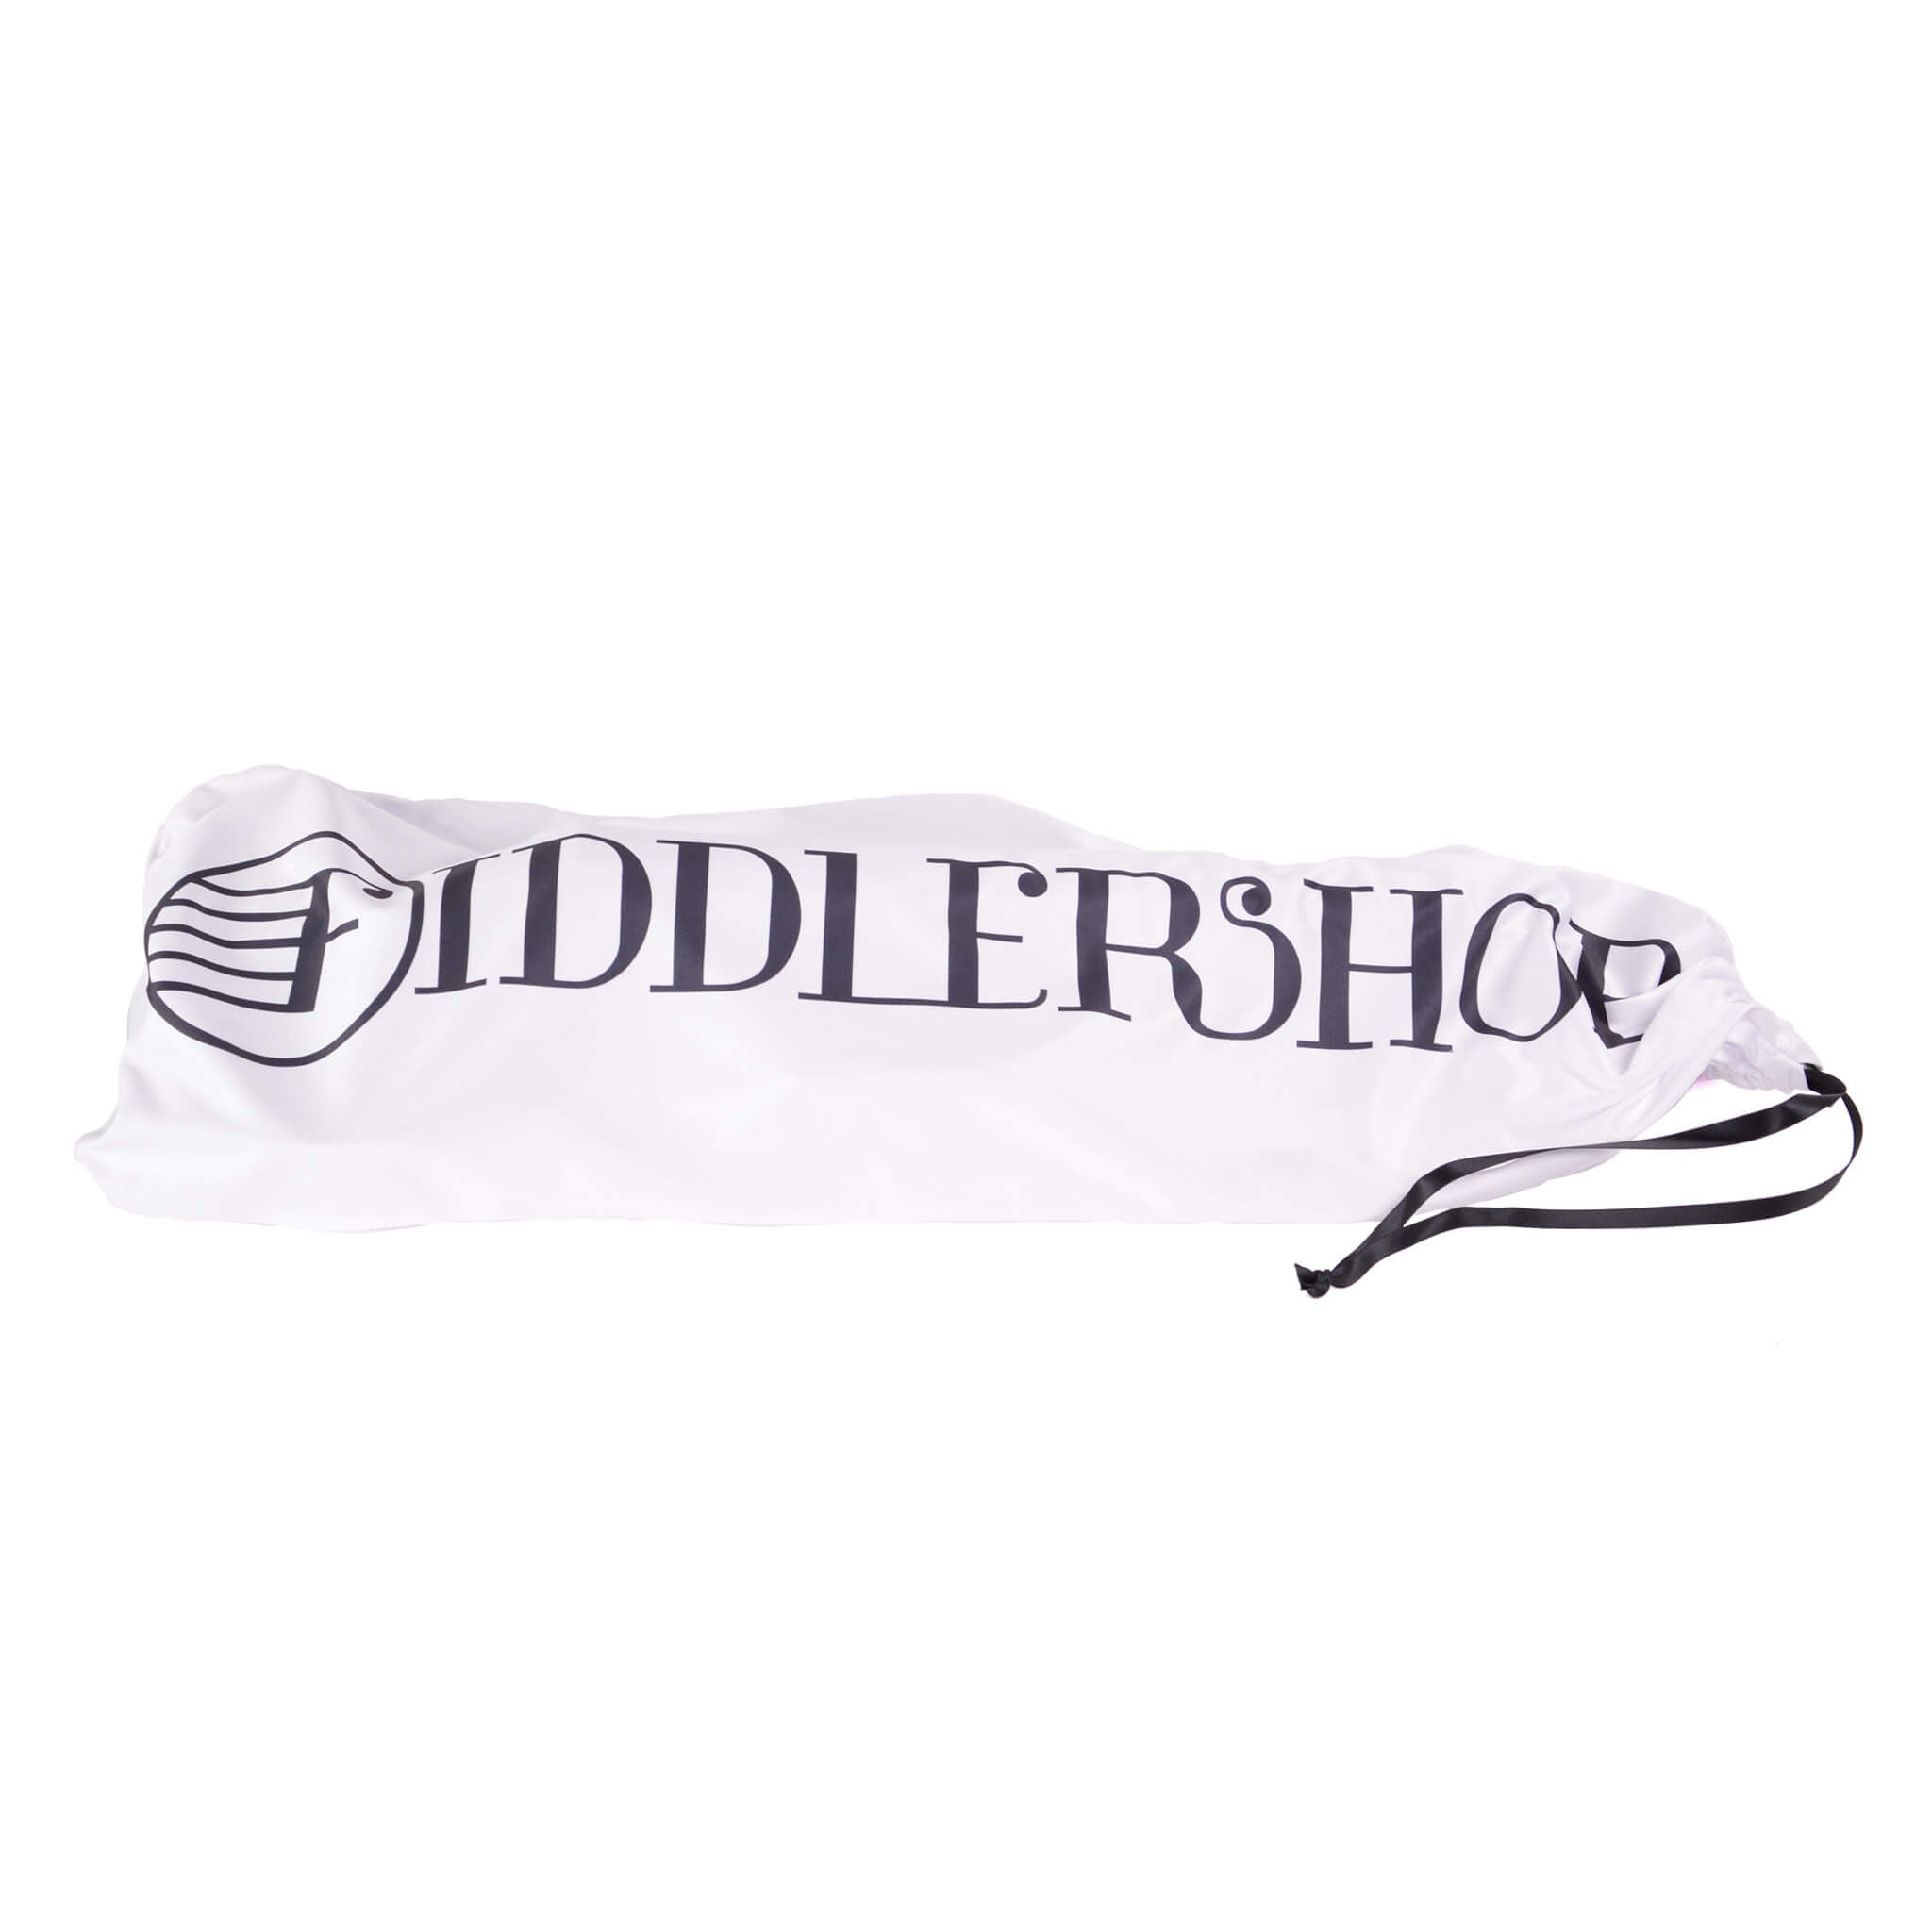 Fiddlershop Violin Bag